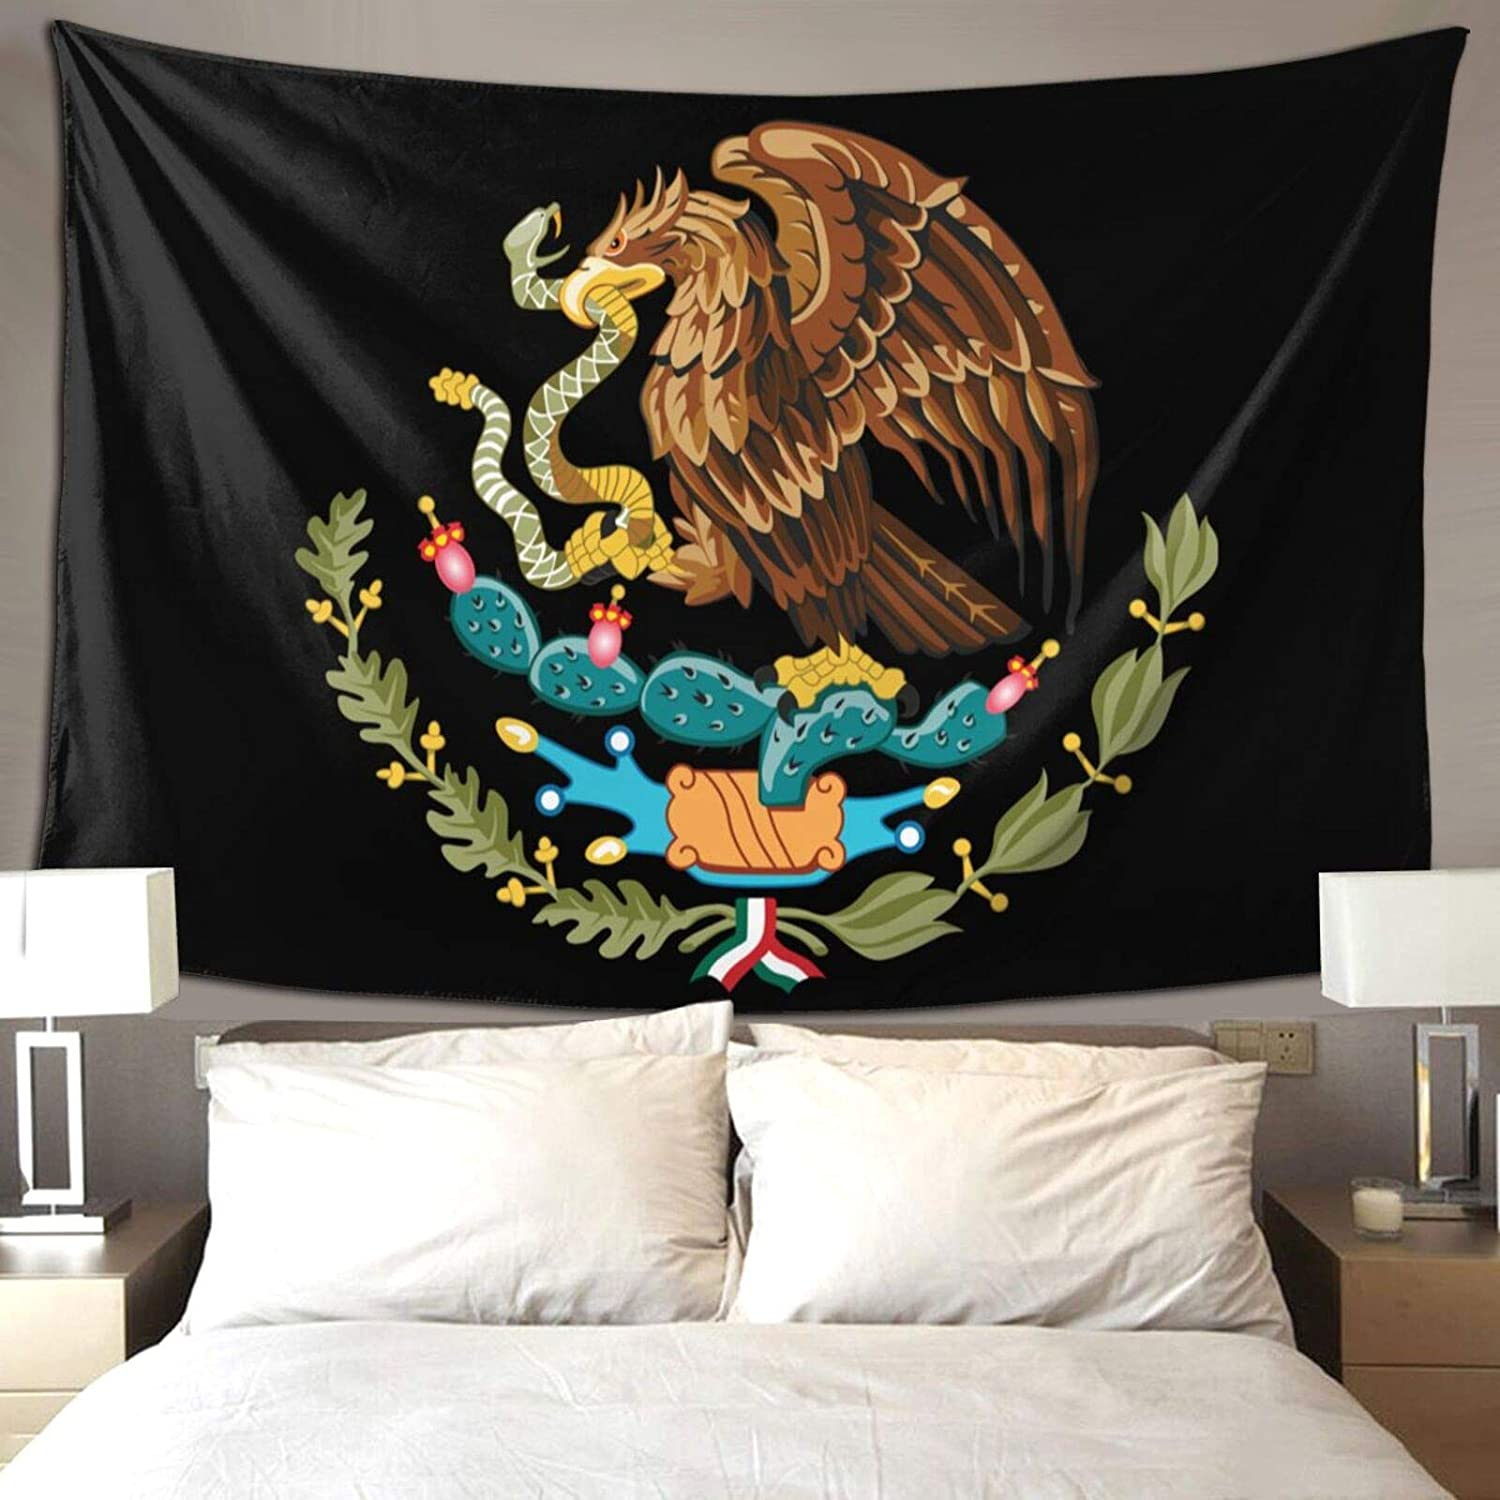 QSMX 40x60 Inches Cool Mexico Flag Eagle Tapestry Wall Hanging, Wall Art Decoration for Bedroom Living Room Dorm, Window Curtain Picnic Mat, Bedspread, Perfect for Teens Adult, Easy to Care